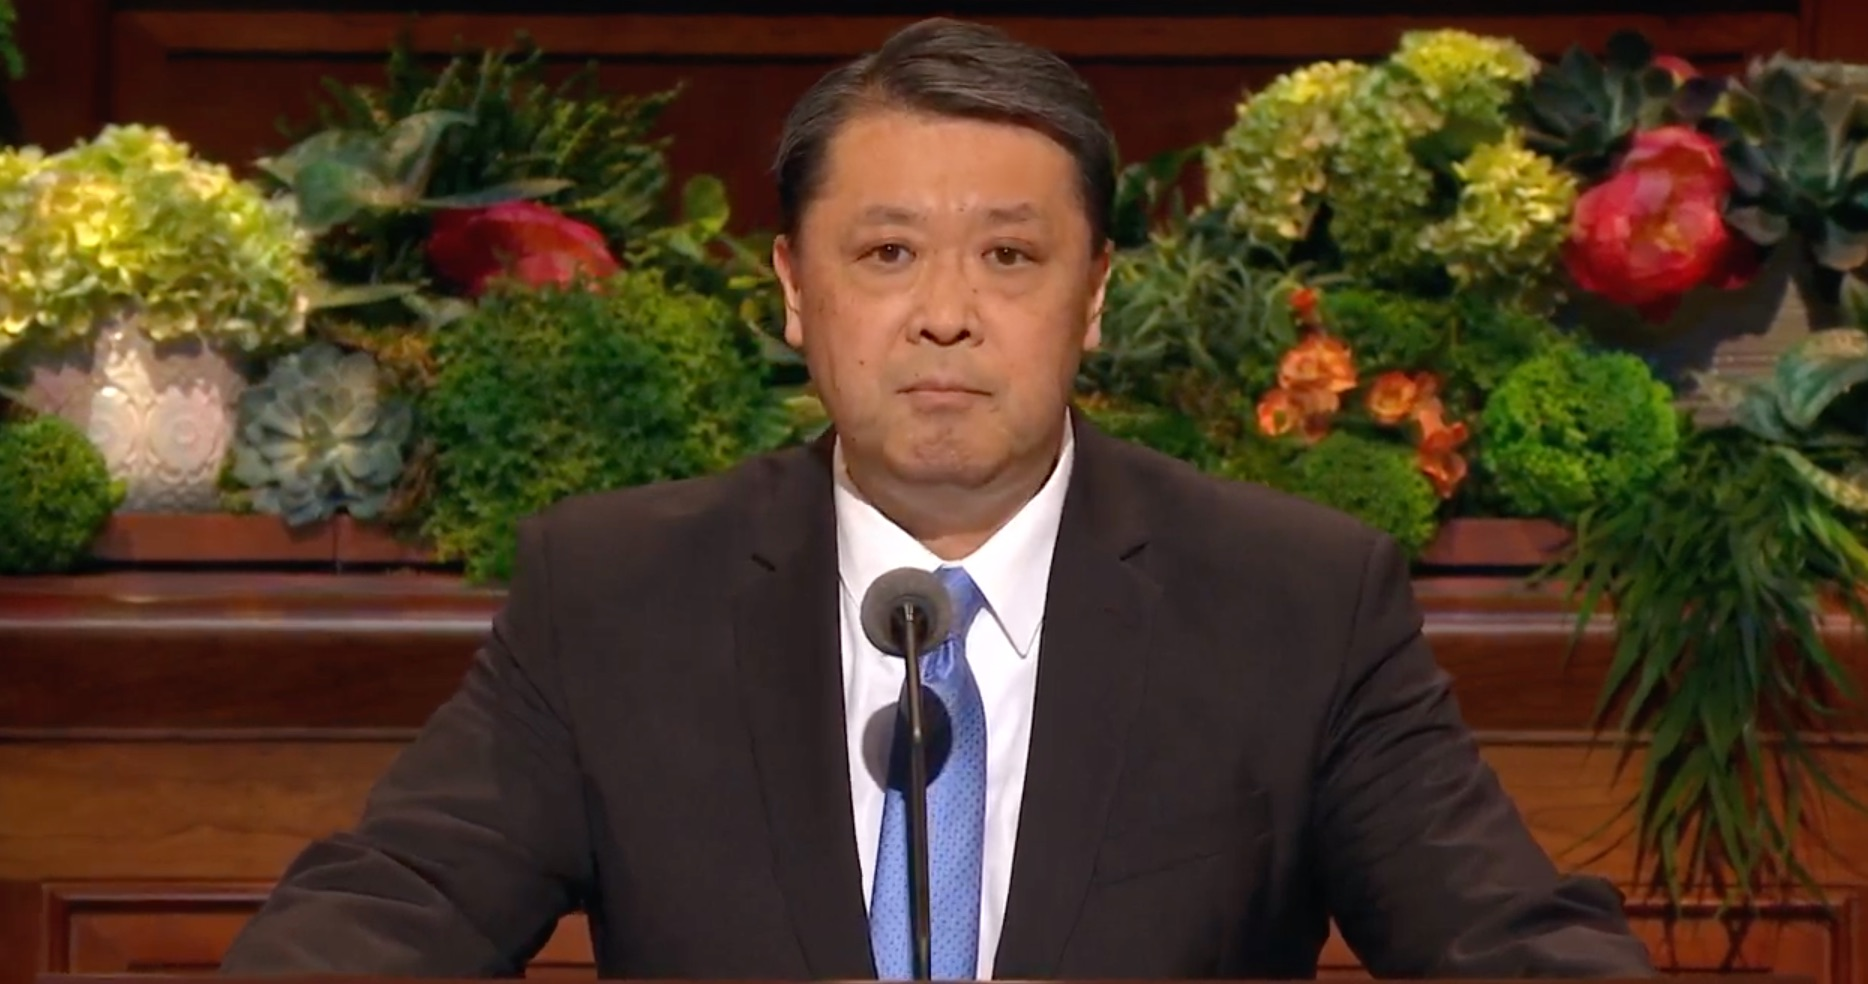 Elder Takashi Wada, a General Authority Seventy, gives his address during the Saturday afternoon session of the 189th Annual General Conference on April 6, 2019.